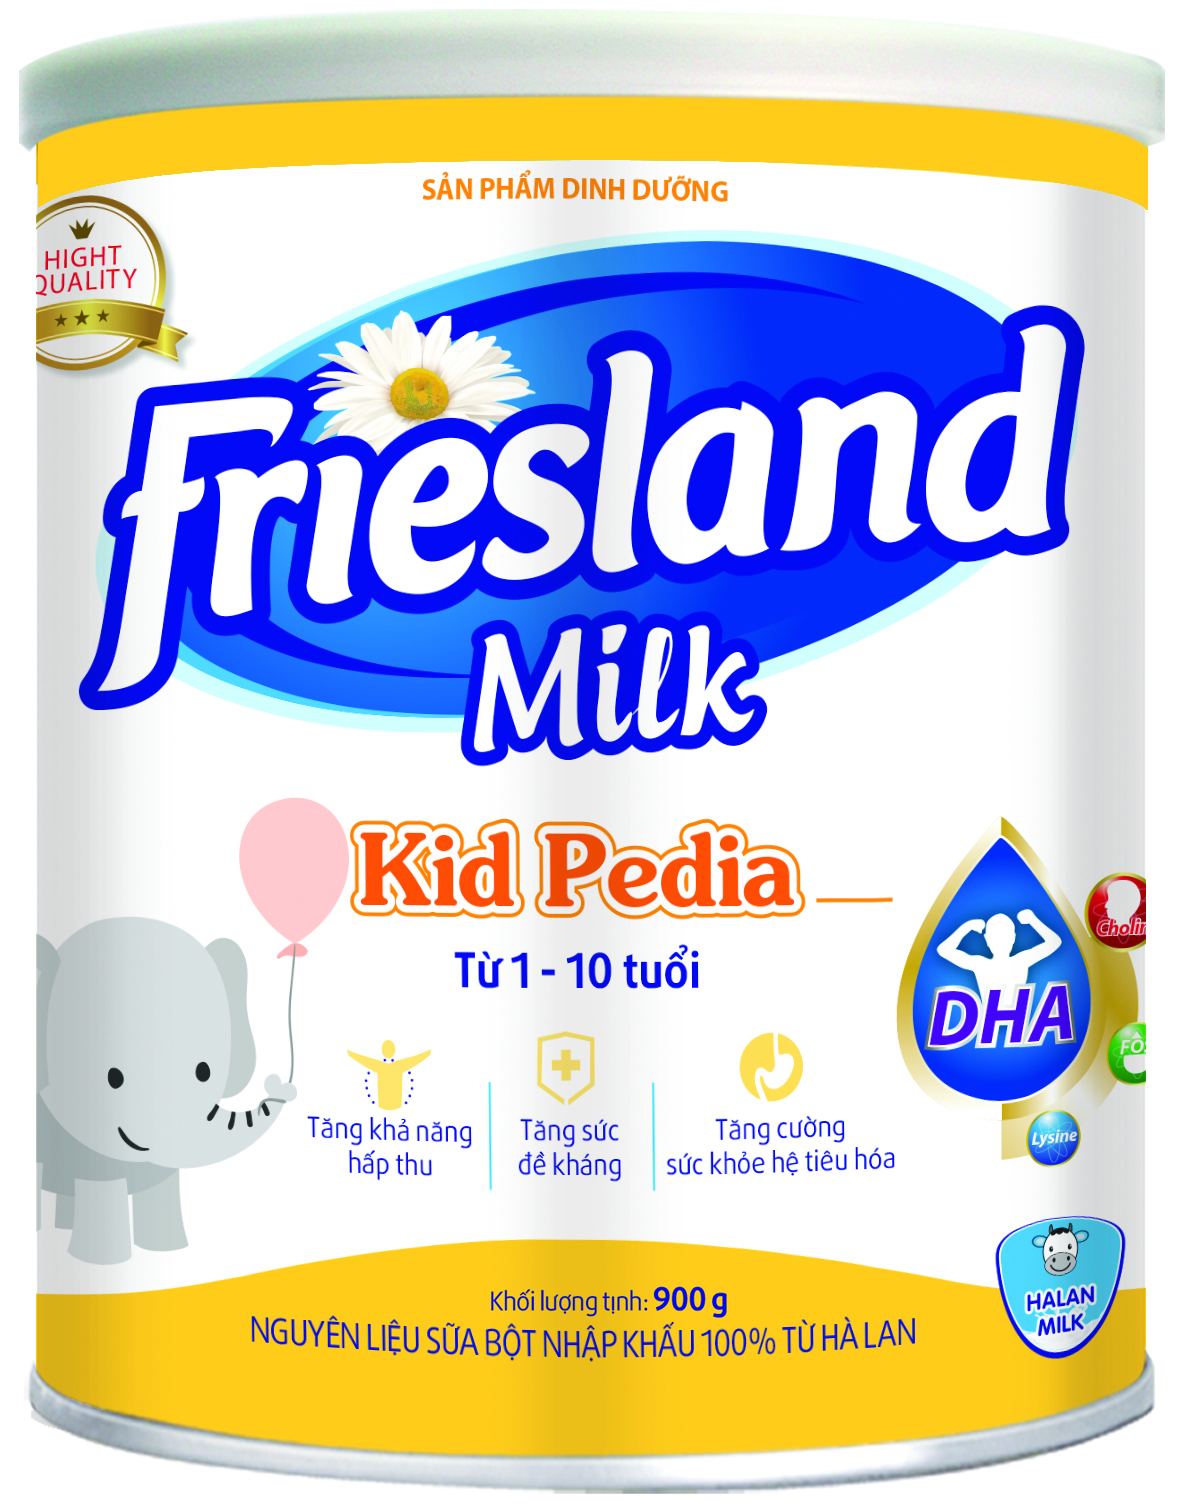 FRIESLAND MILK KIDS PEDIA 900g